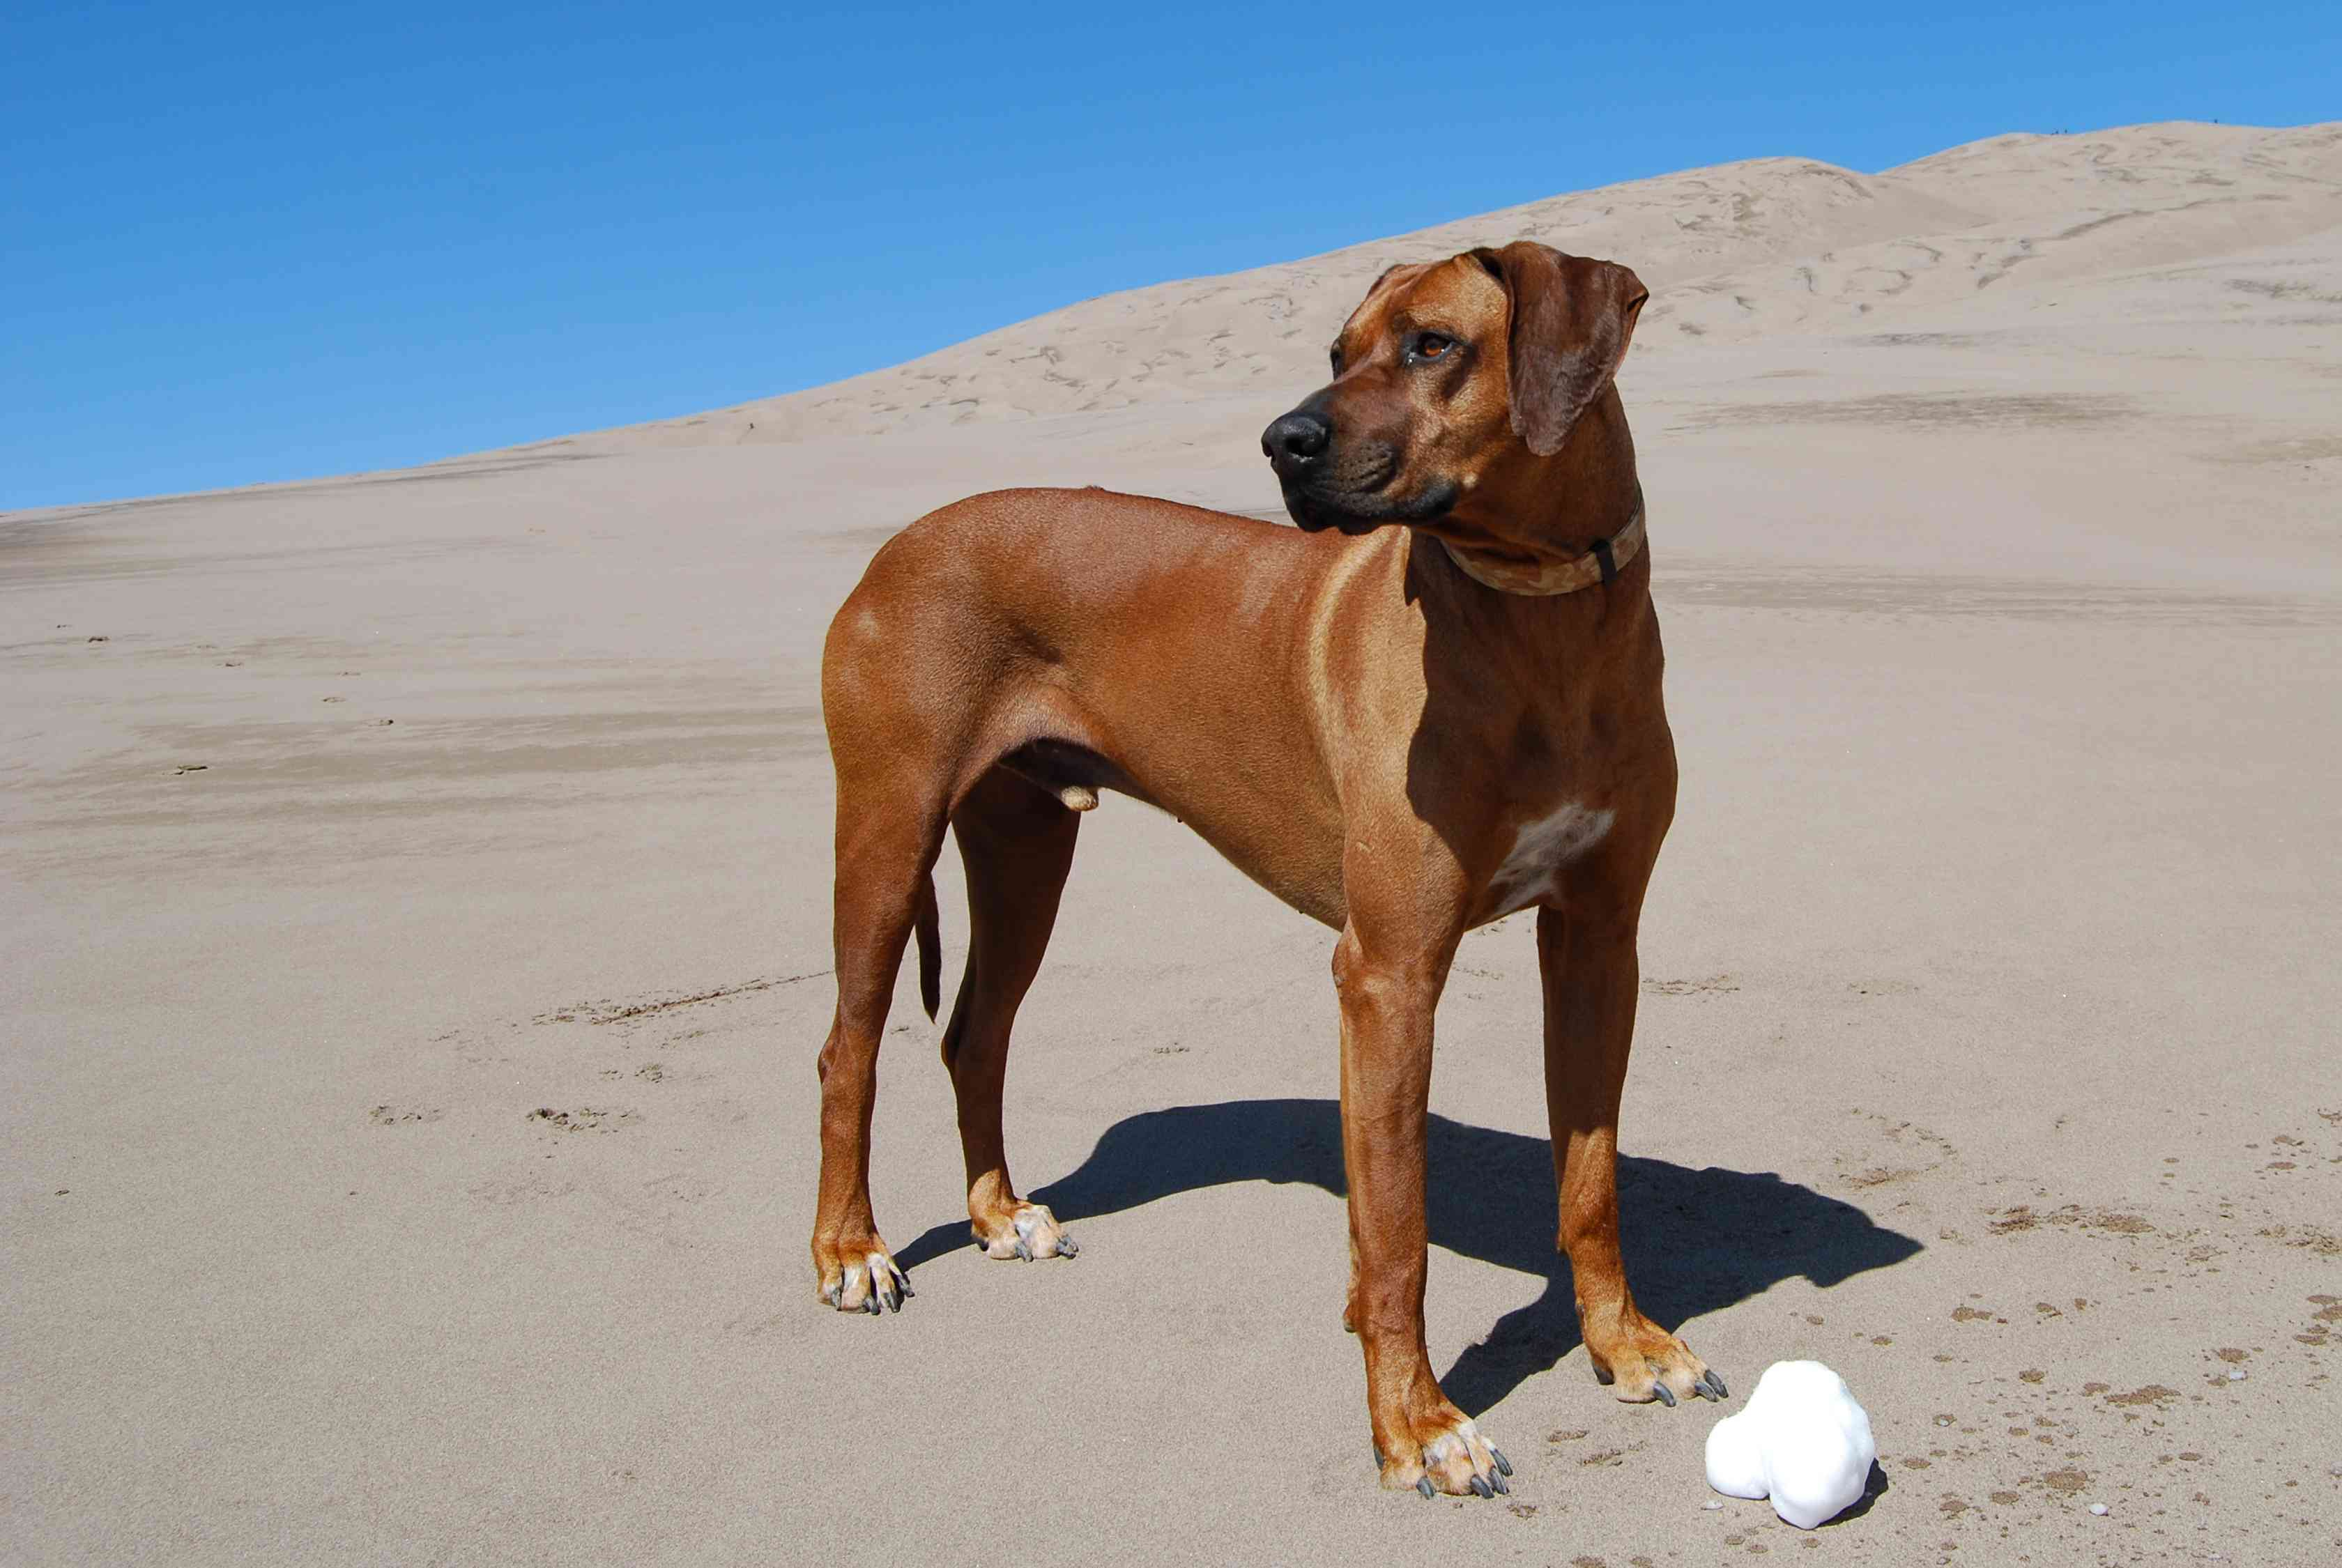 An elegant, brown Rodhesian Ridgeback standing tall on a sand dune with blue sky in the background.